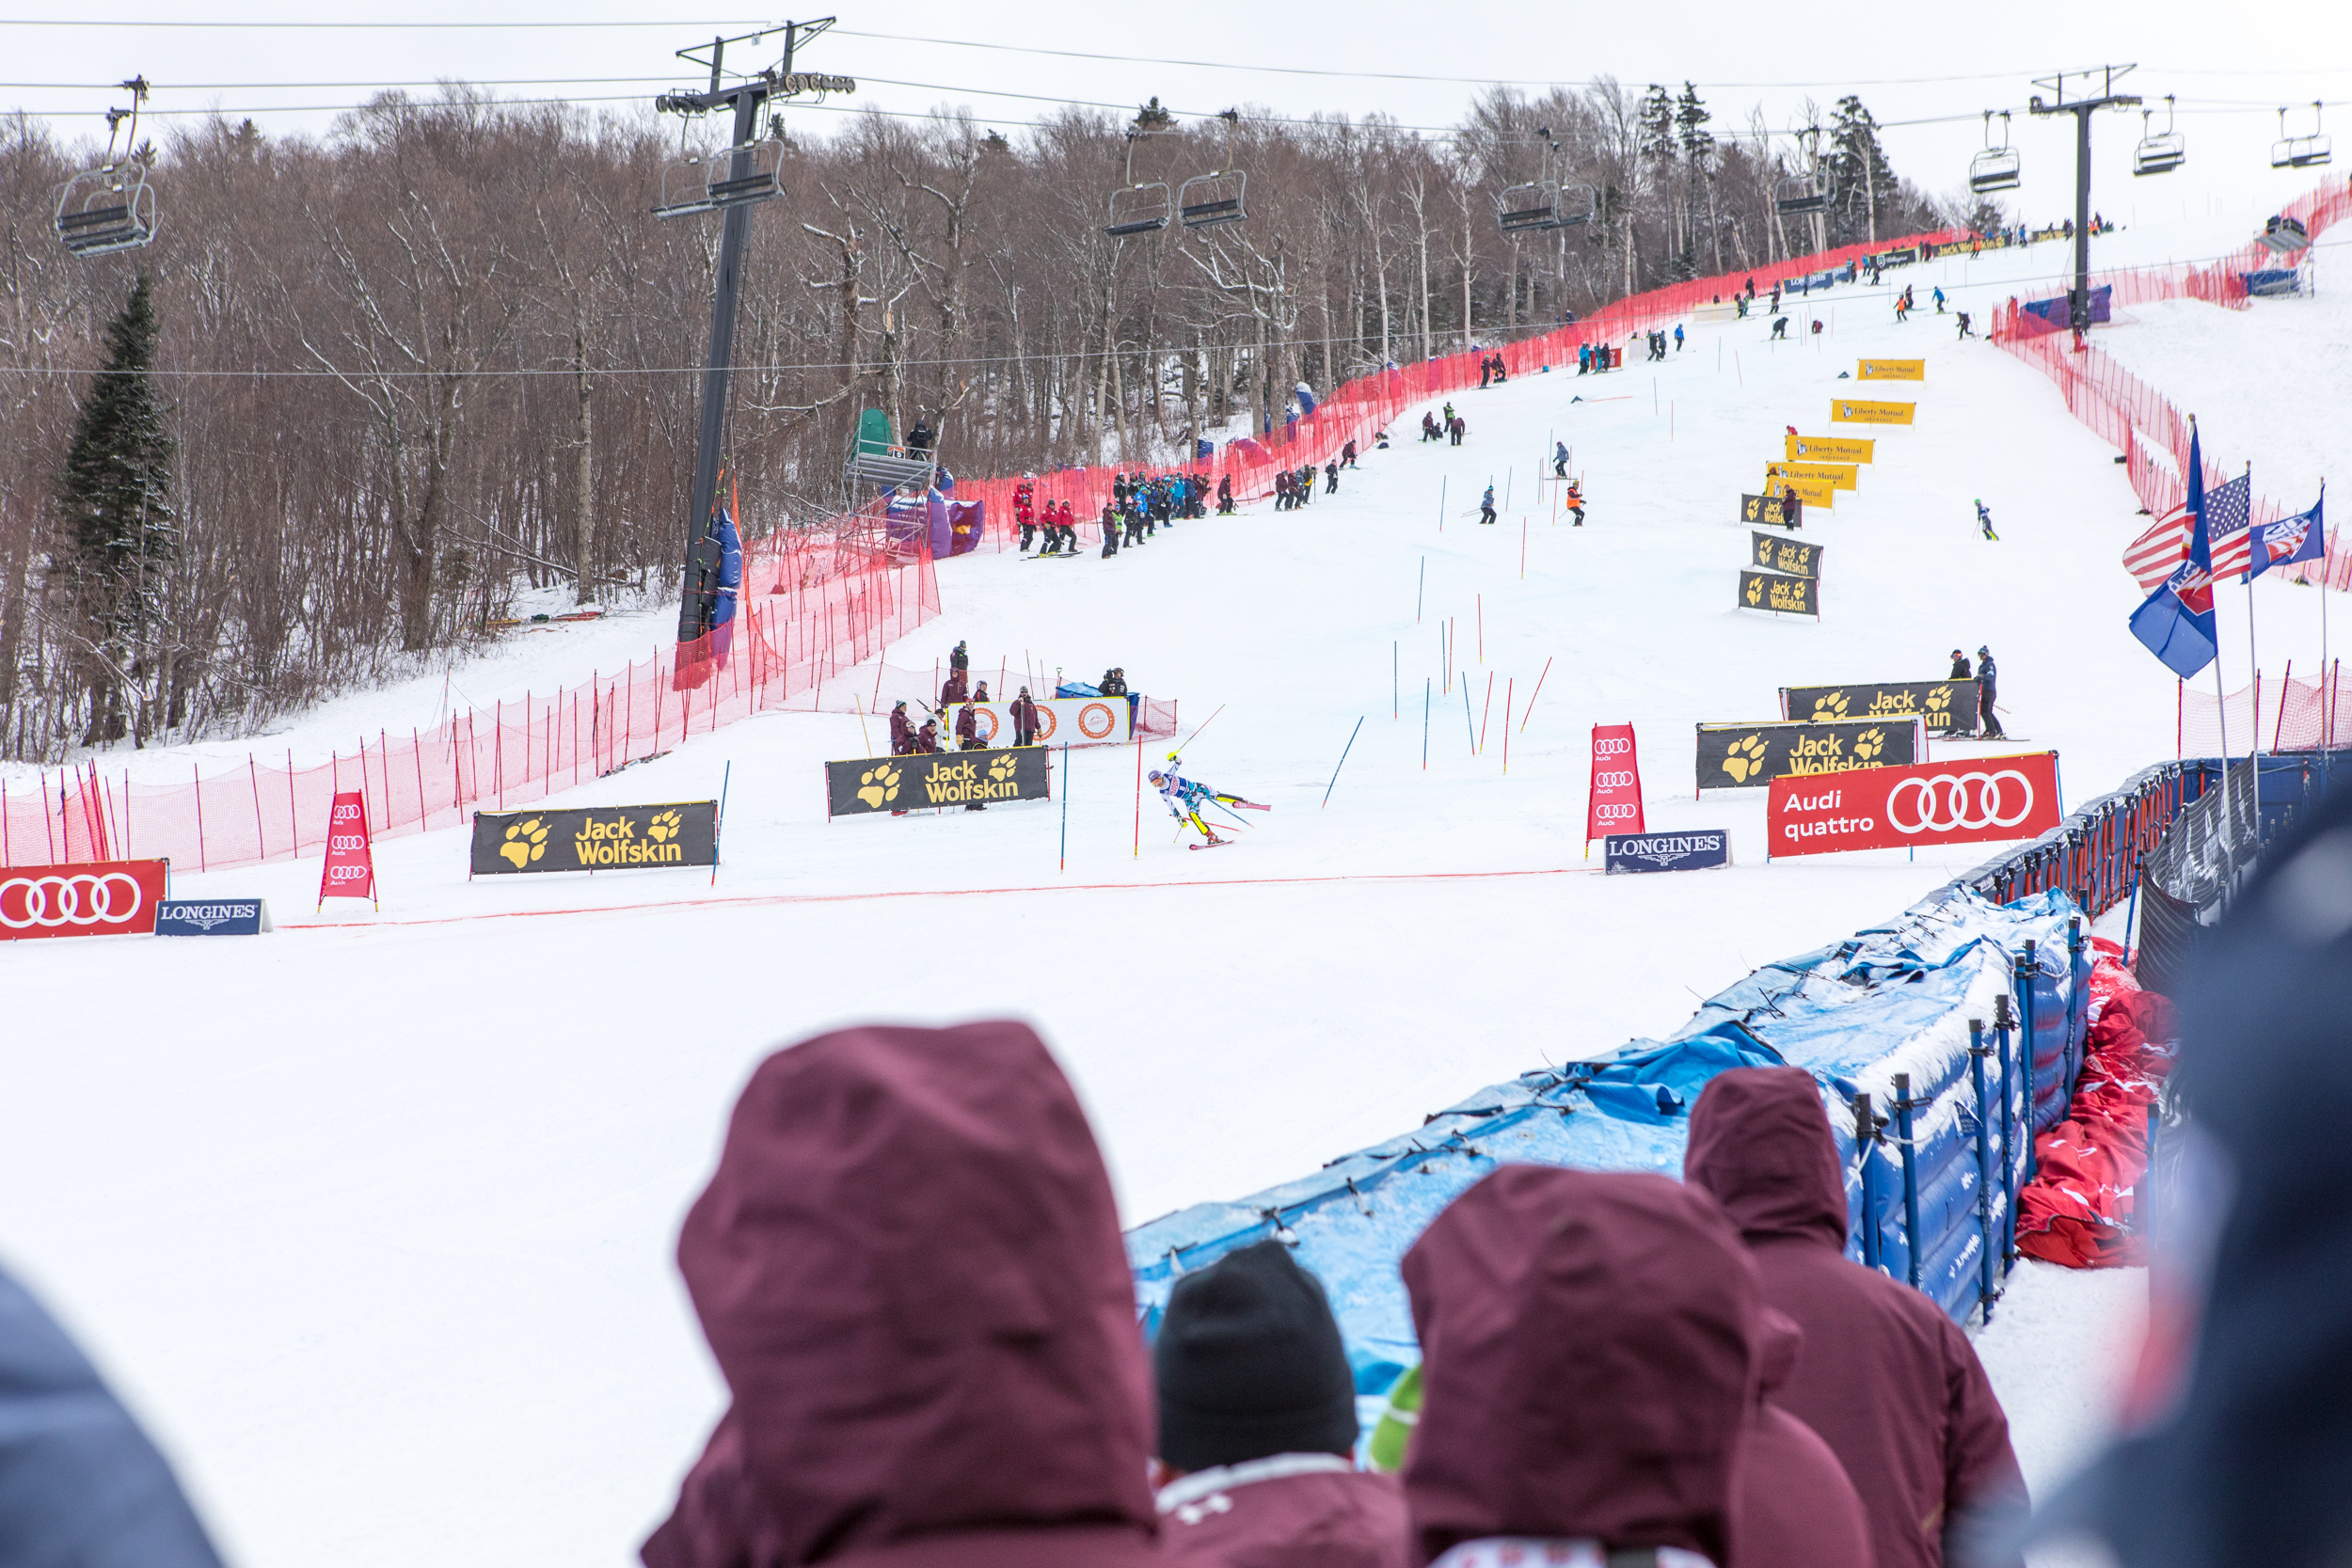 Killington-World-Cup-SL-KIRCHGASSER-Michaela.jpg